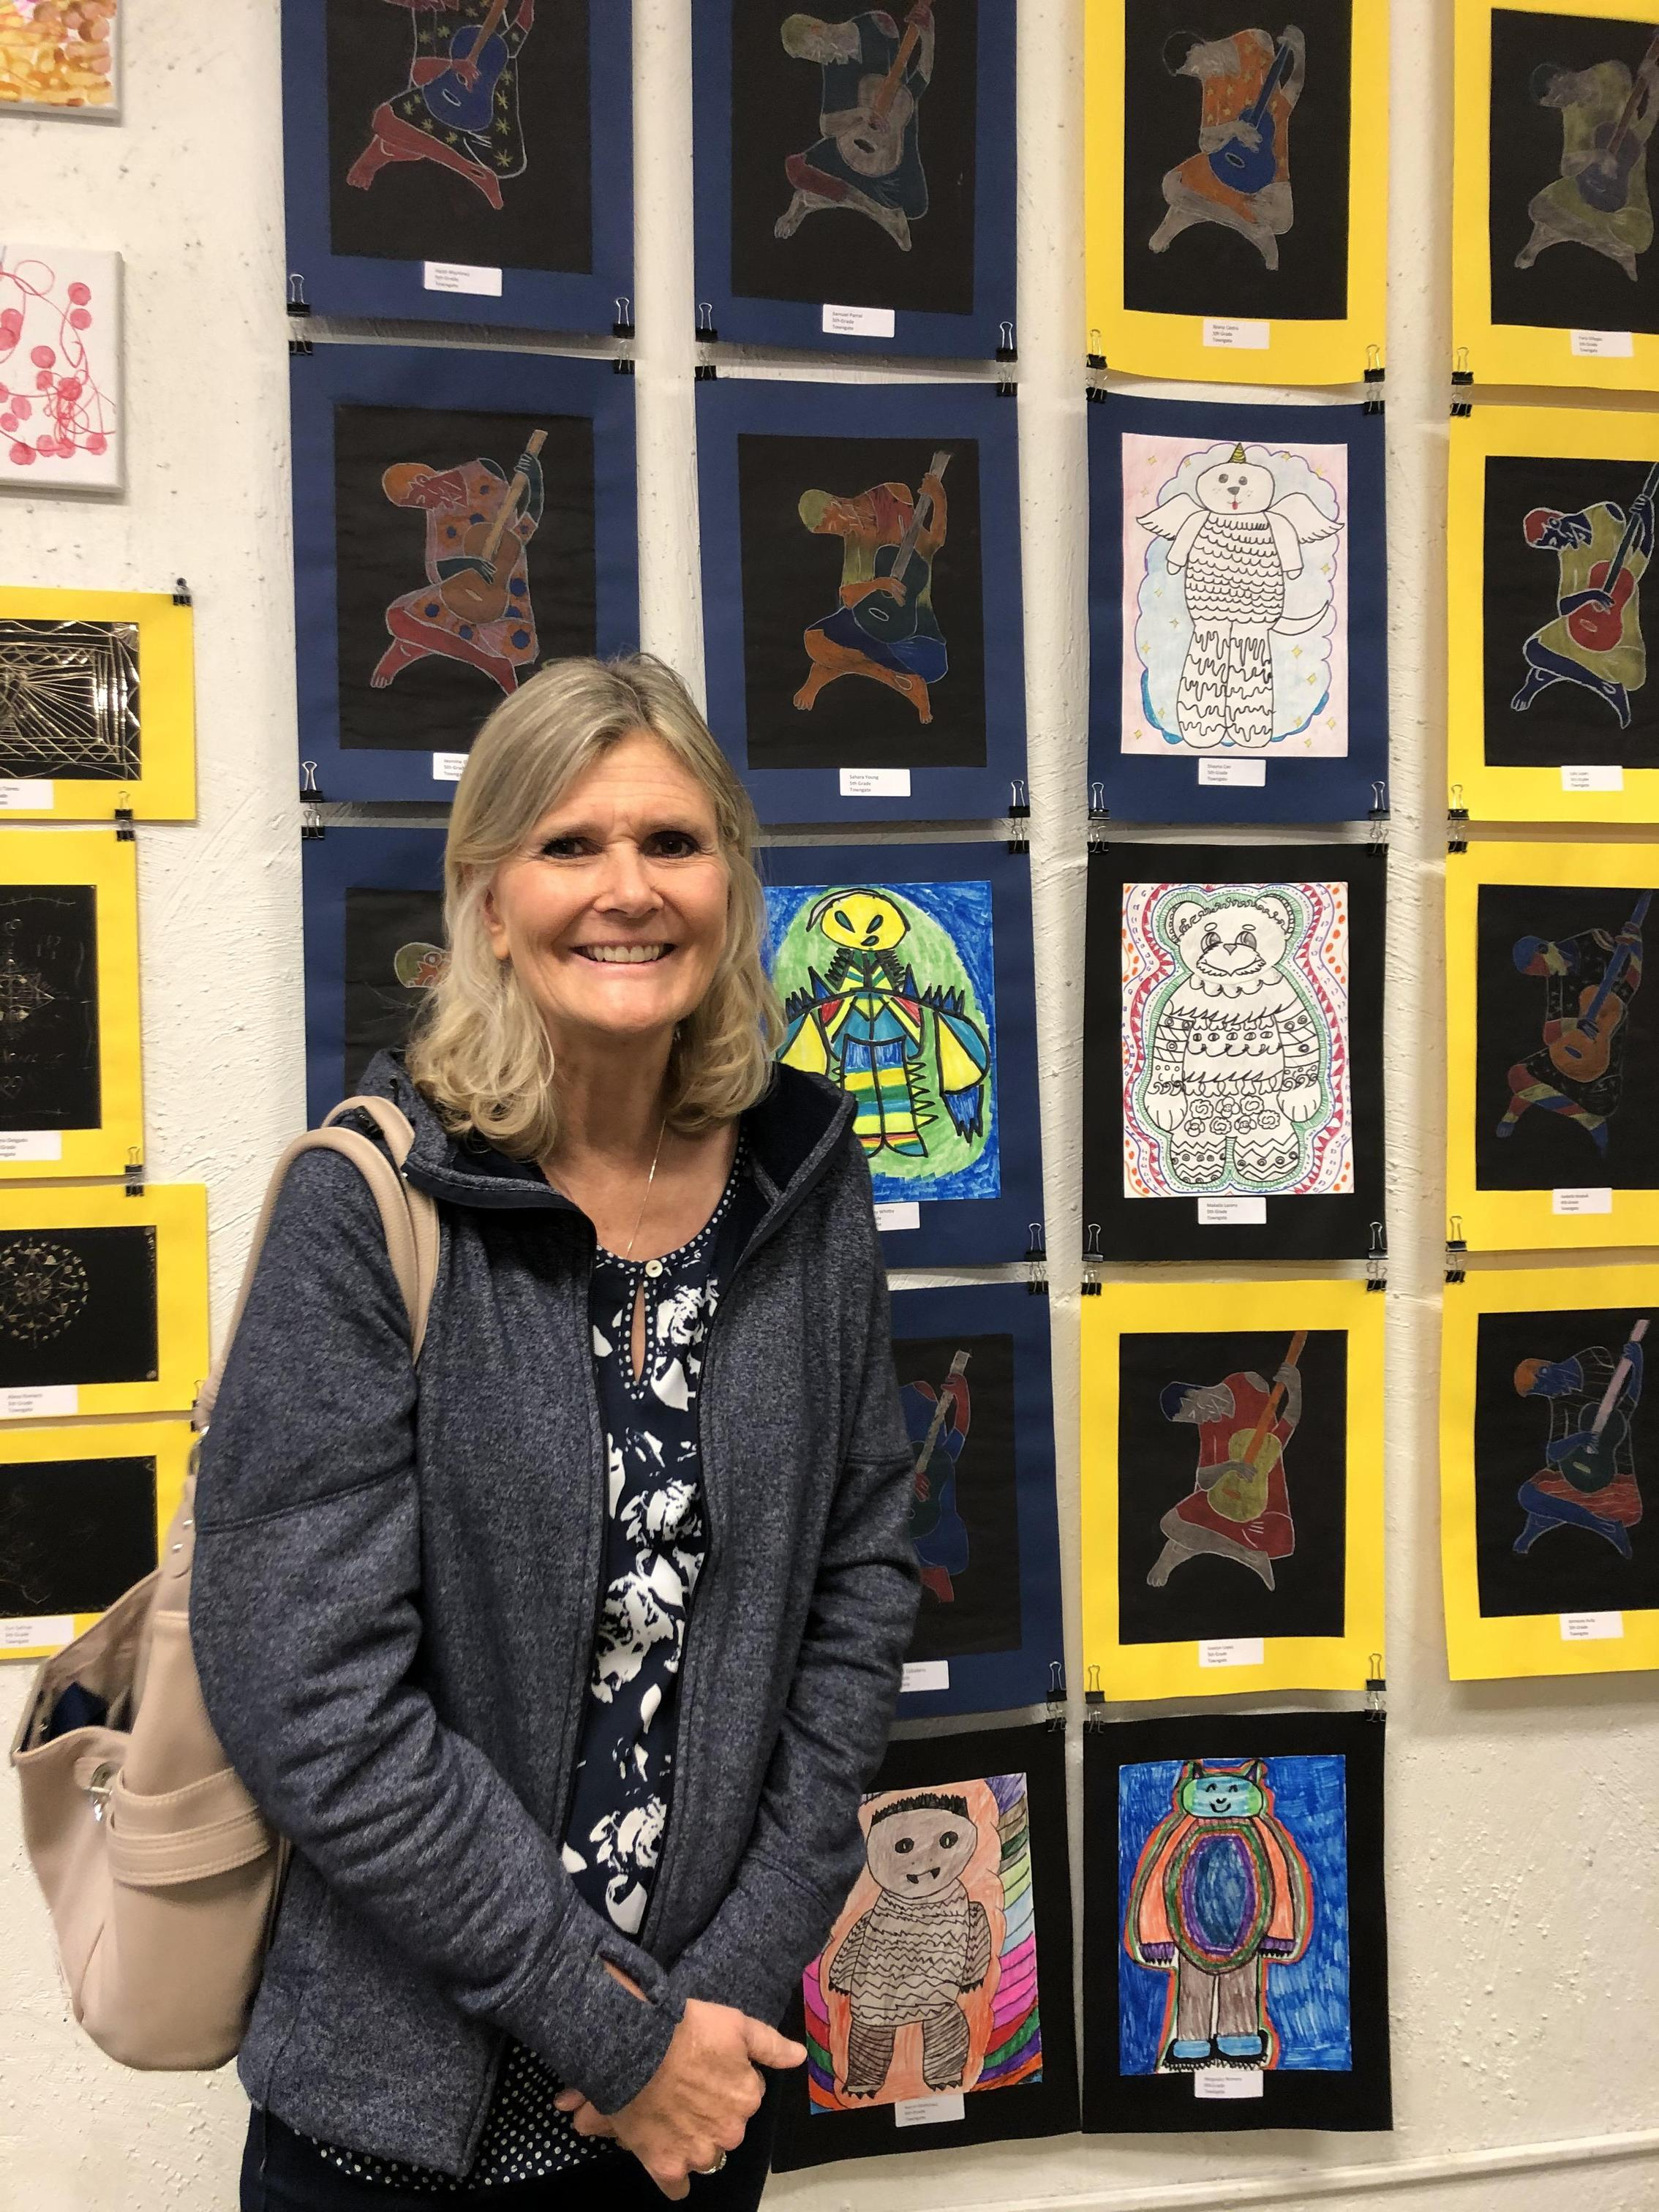 District Staff Member at the art show